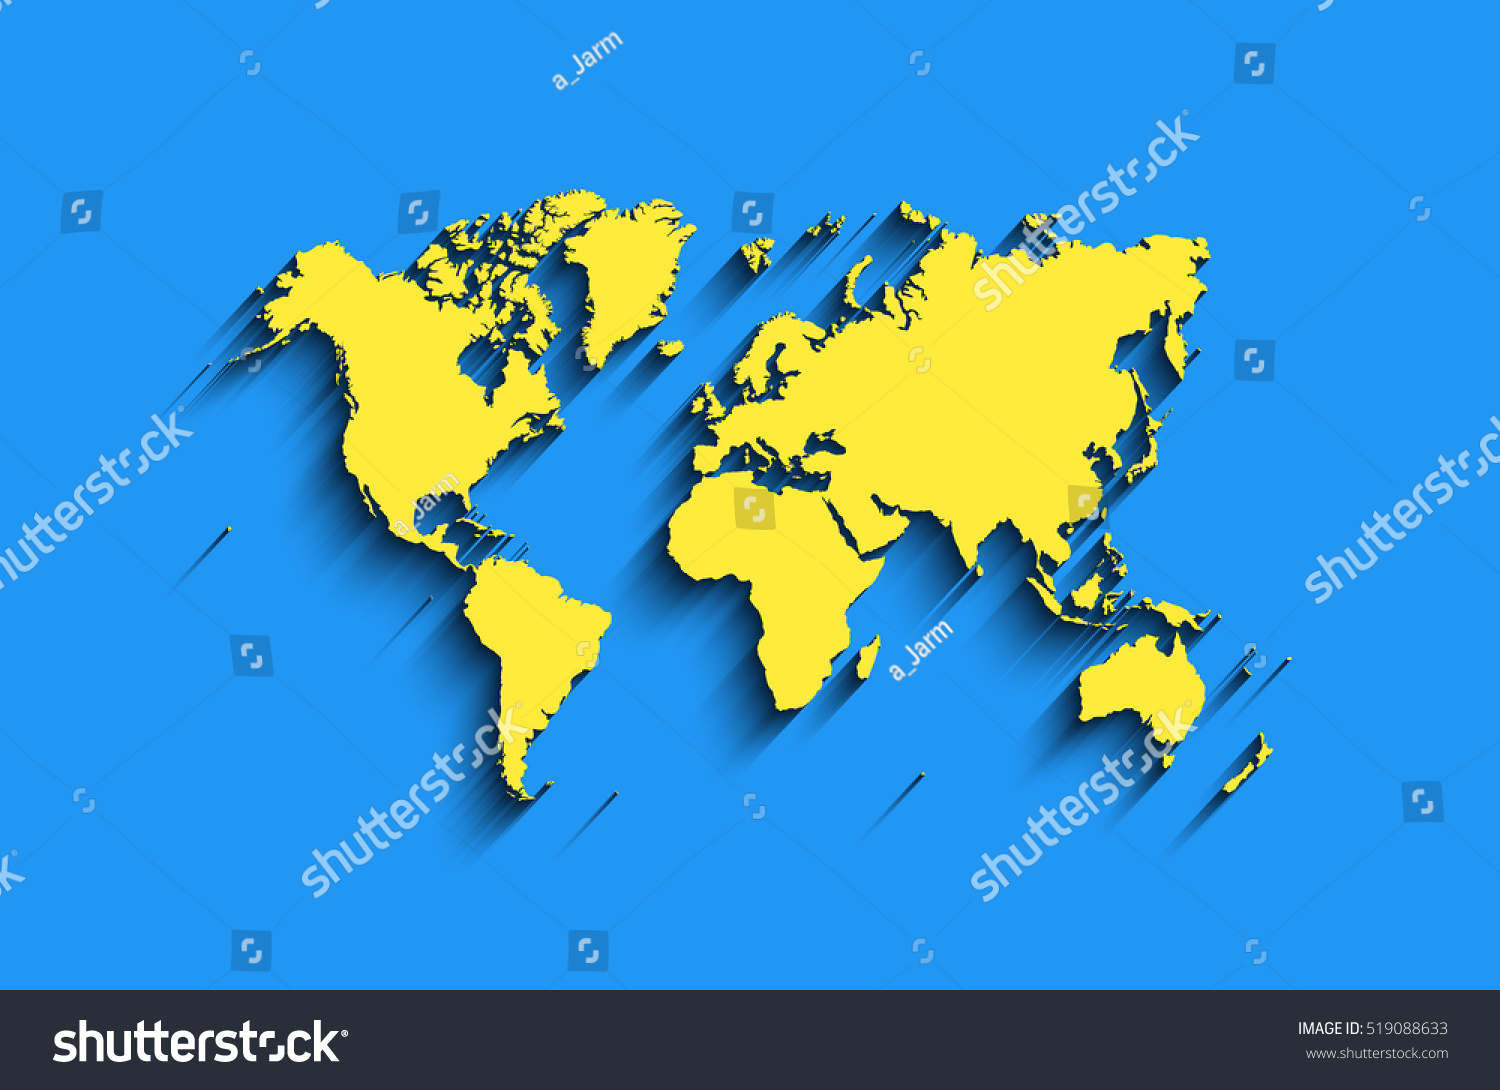 Vector world map blue yellow colors stock vector 519088633 vector world map in blue yellow colors with shadow modern map background clear gumiabroncs Choice Image